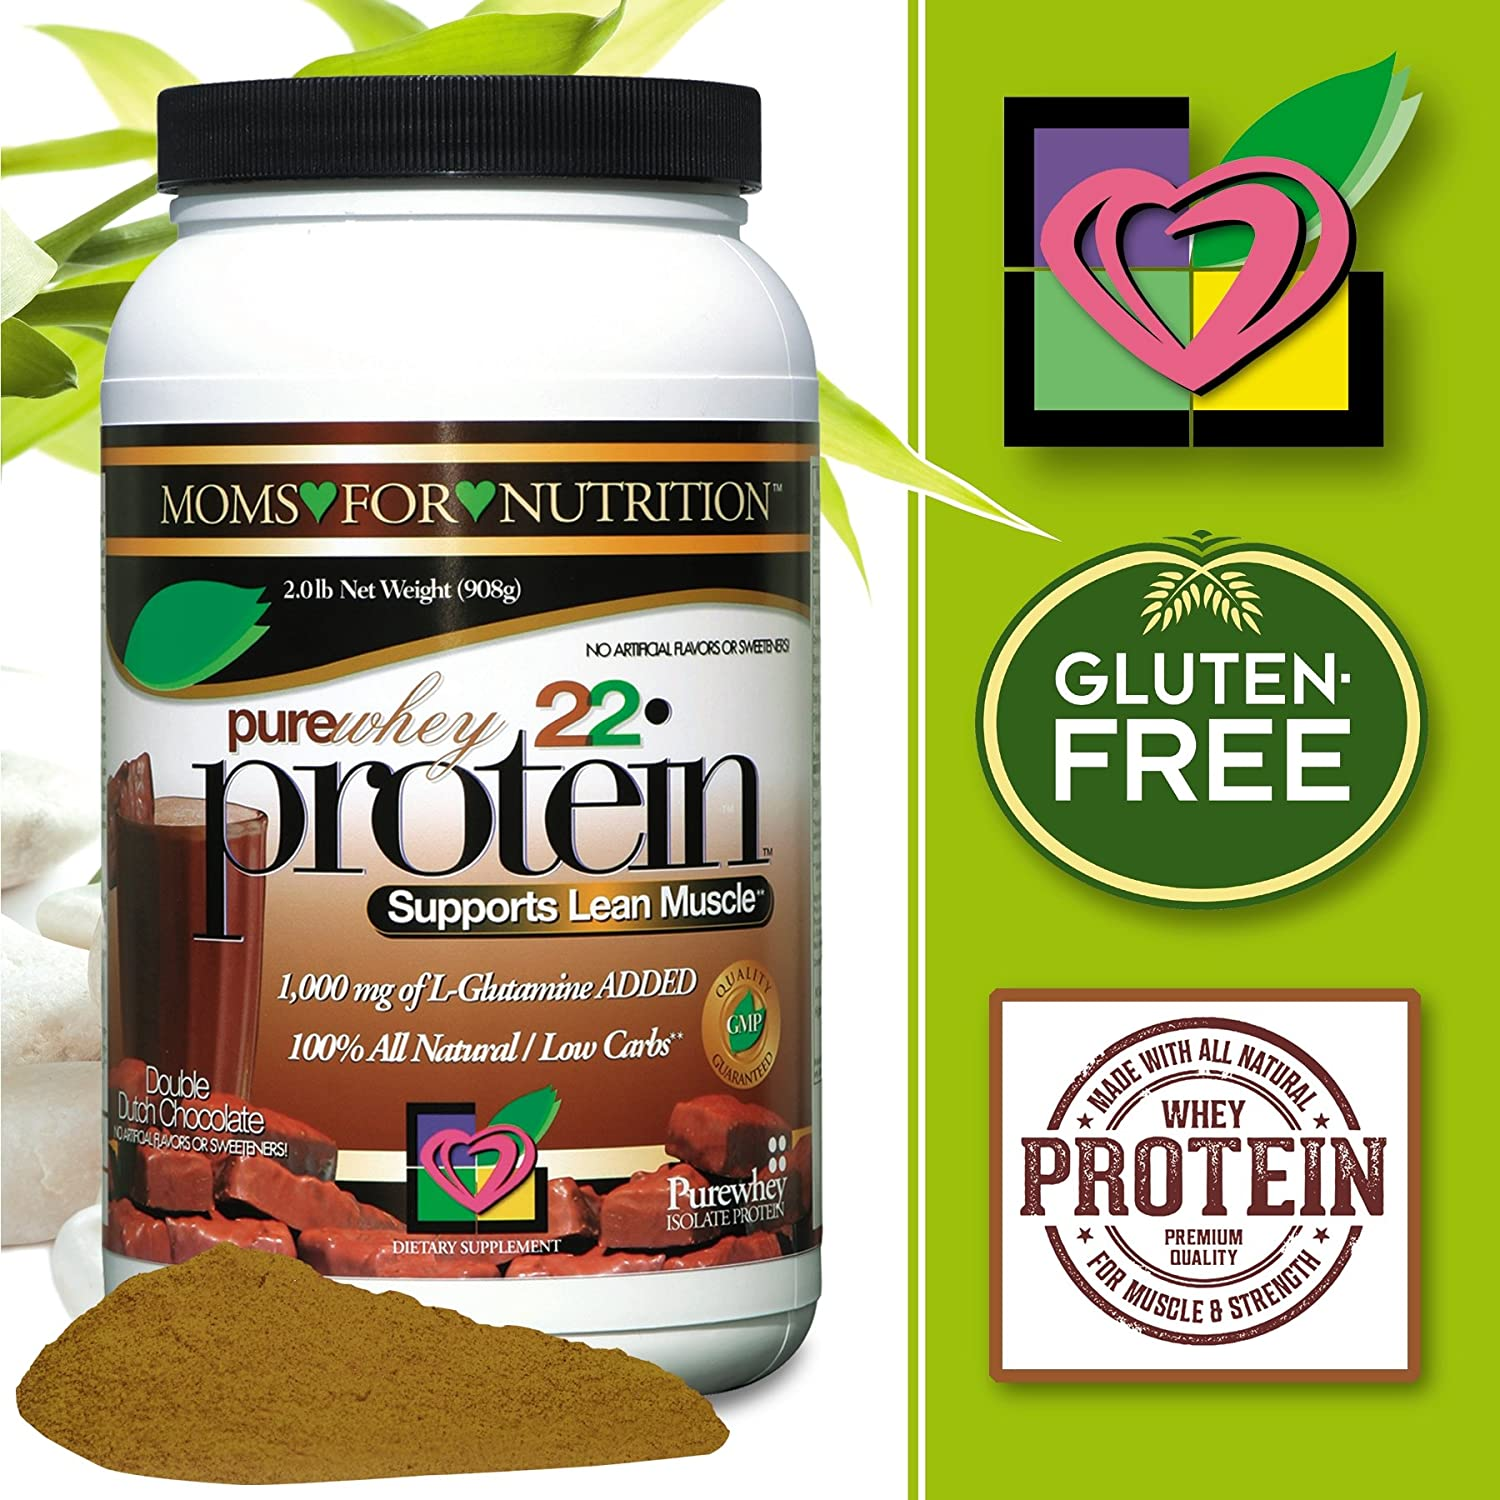 Pure Whey Protein Chocolate Shake Flavor Low Fat Low Calorie High Protein Nothing Artificial All Natural Double Dutch Chocolate. 2 Pounds